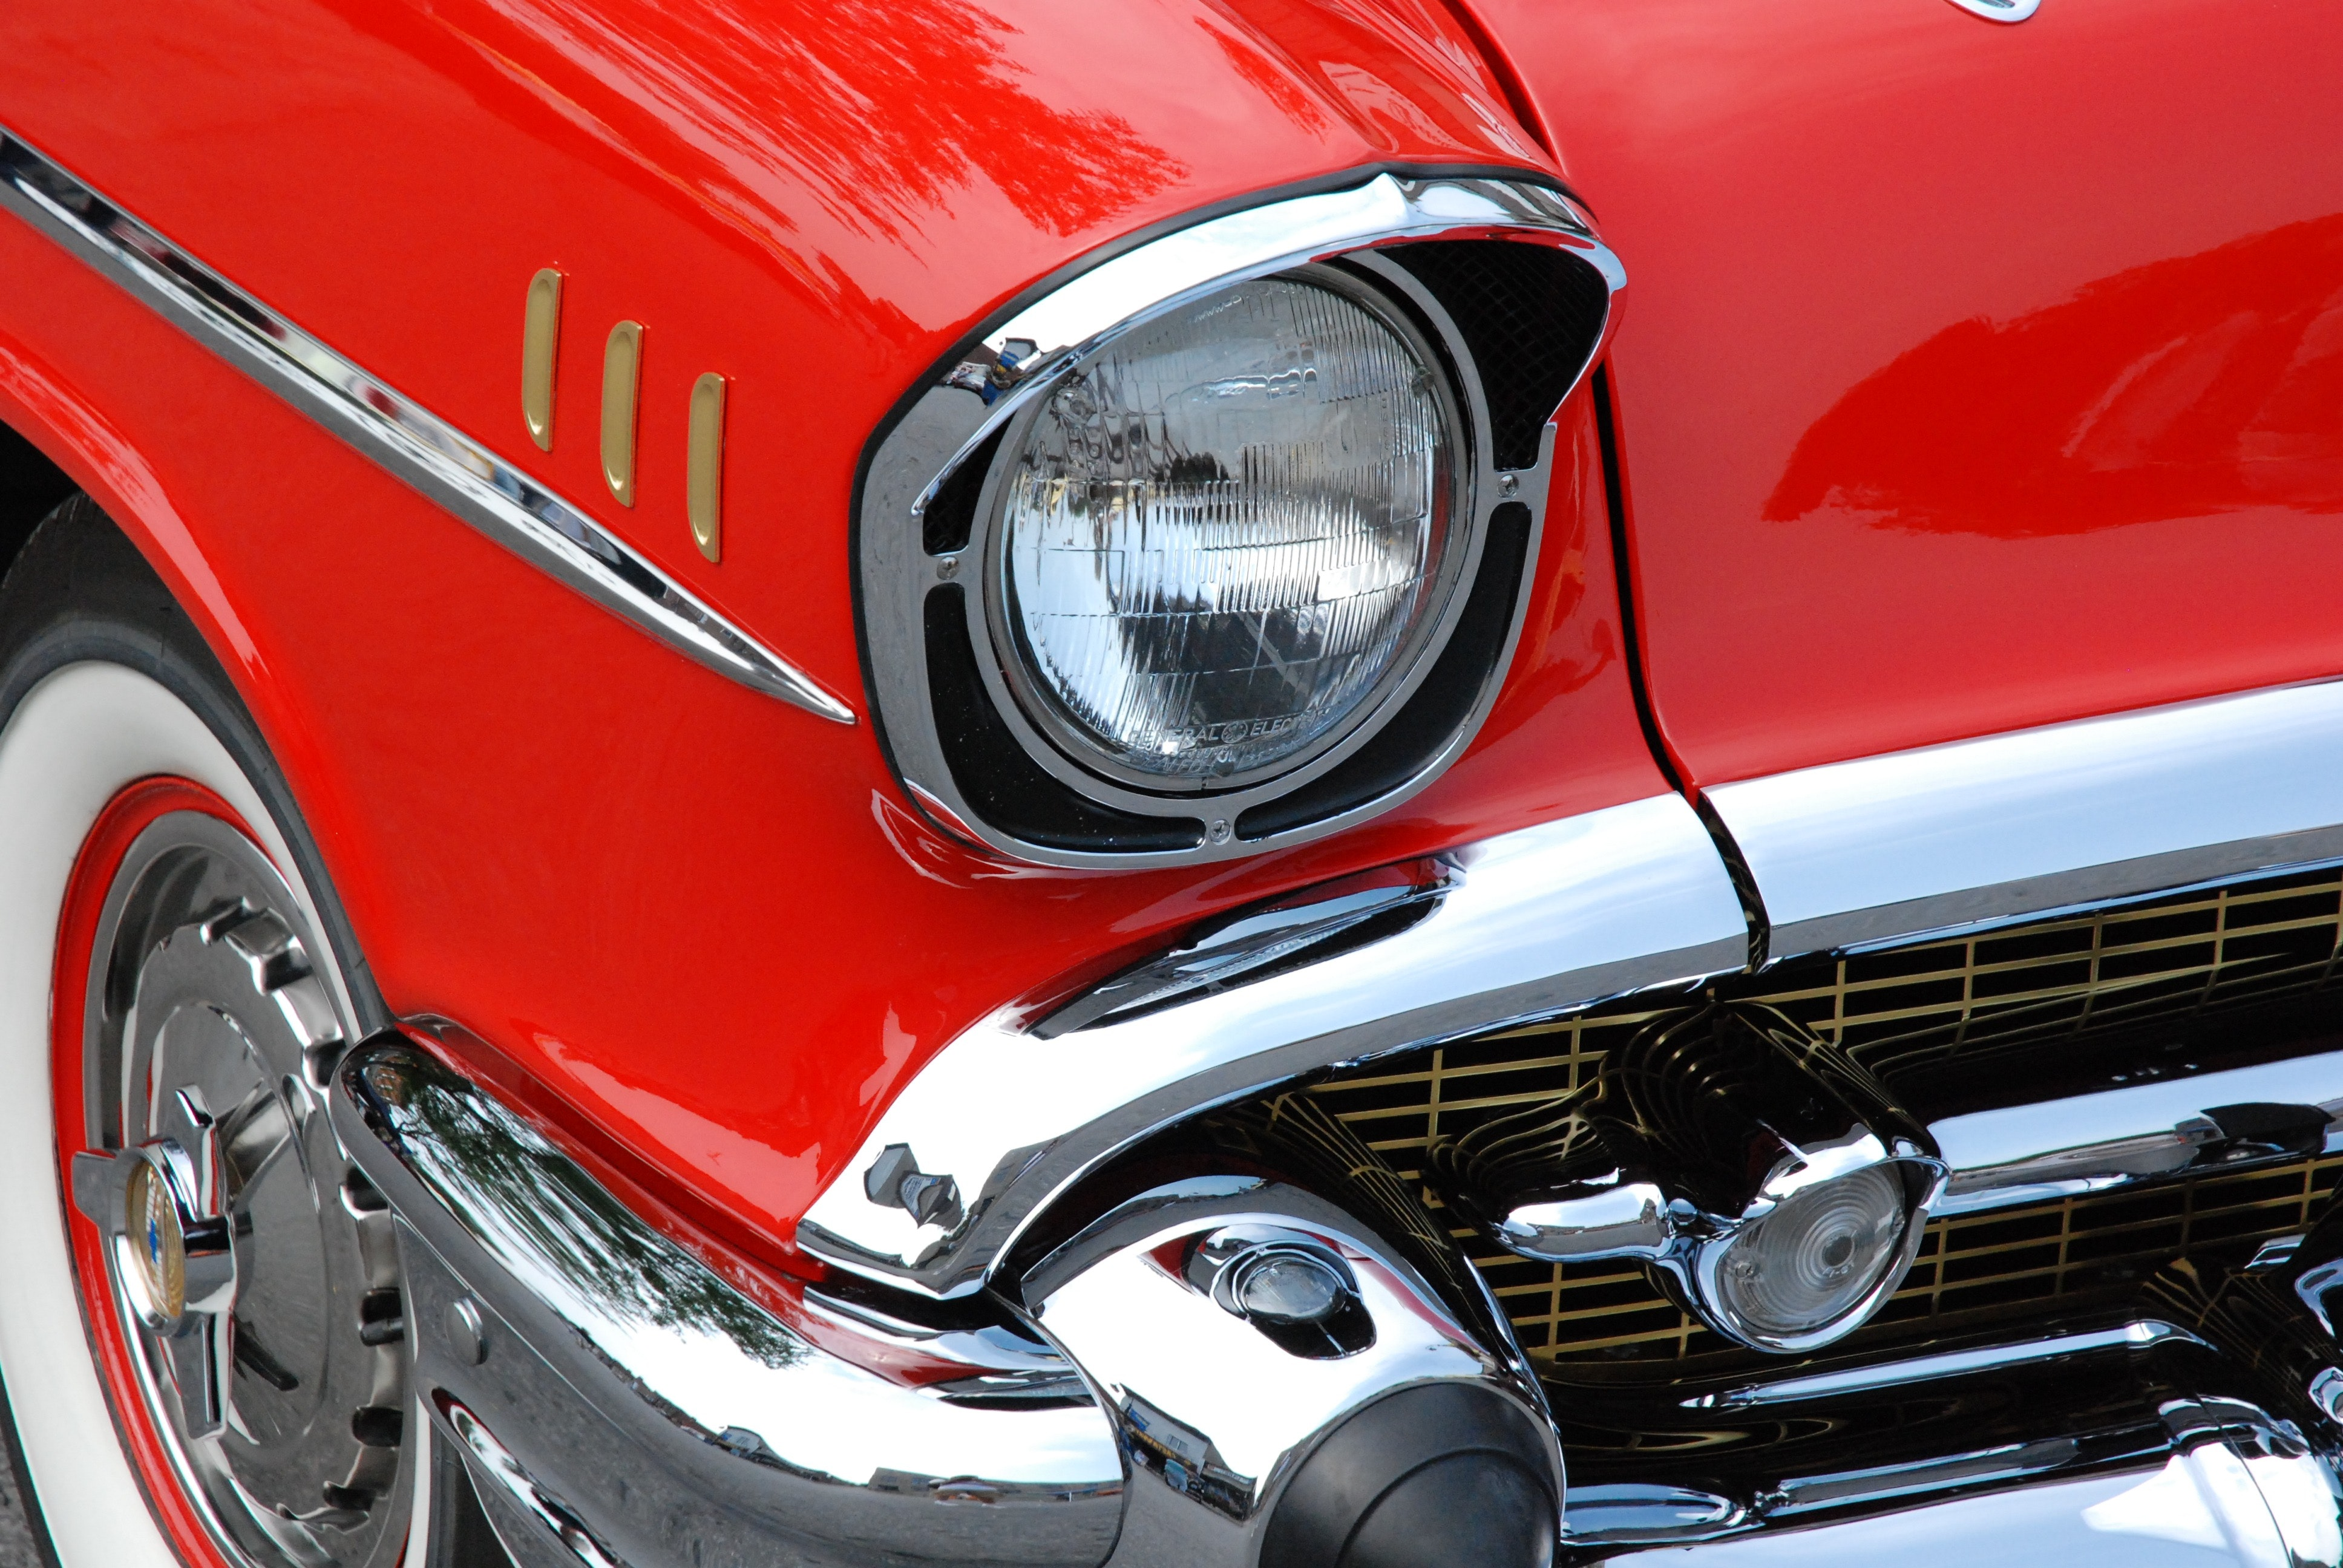 Red and gray classic car photo